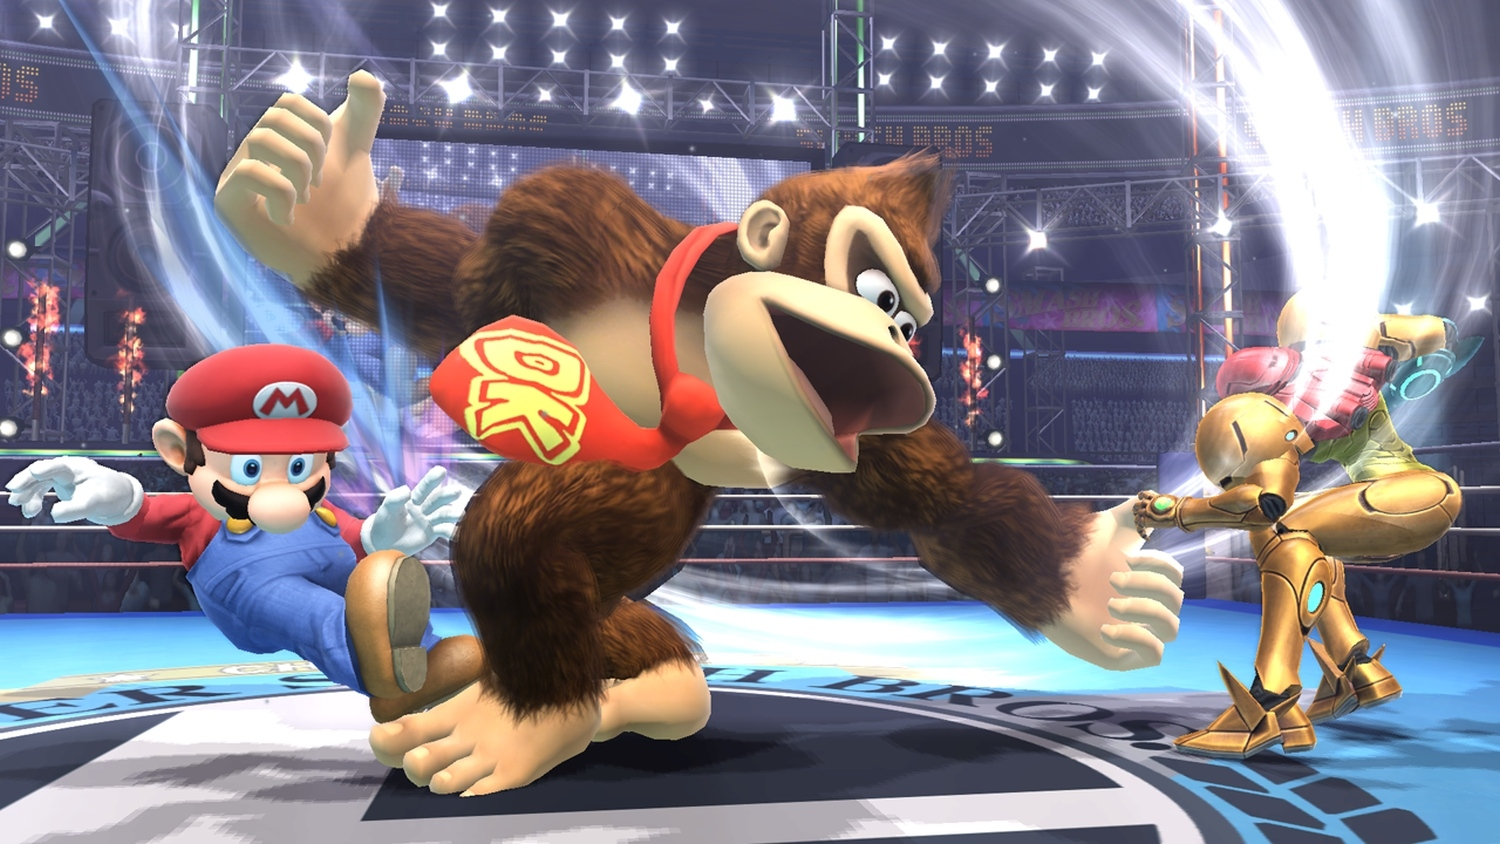 Smash Bros. Wii U and 3DS will not use touch screen controls